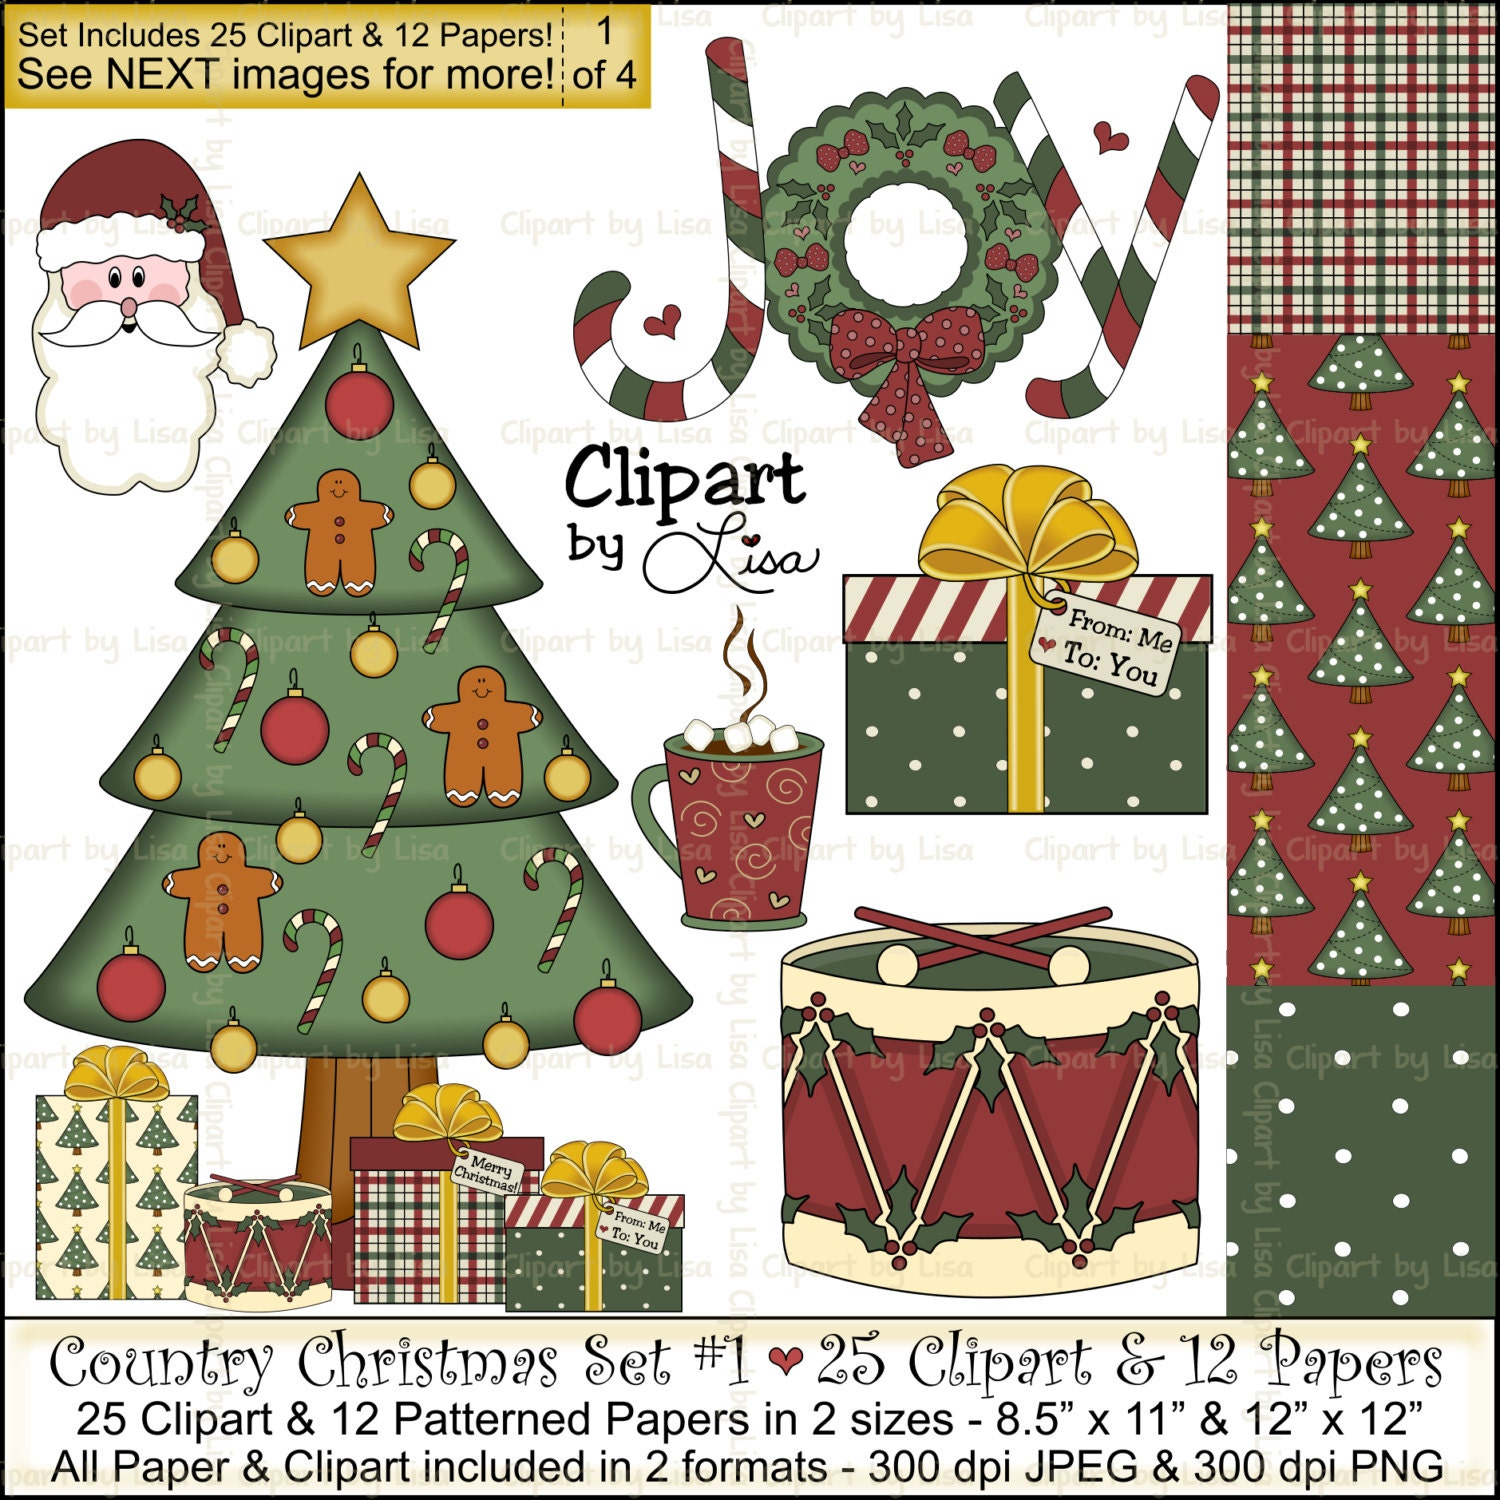 Country Christmas Clip Art & Papers Set 1